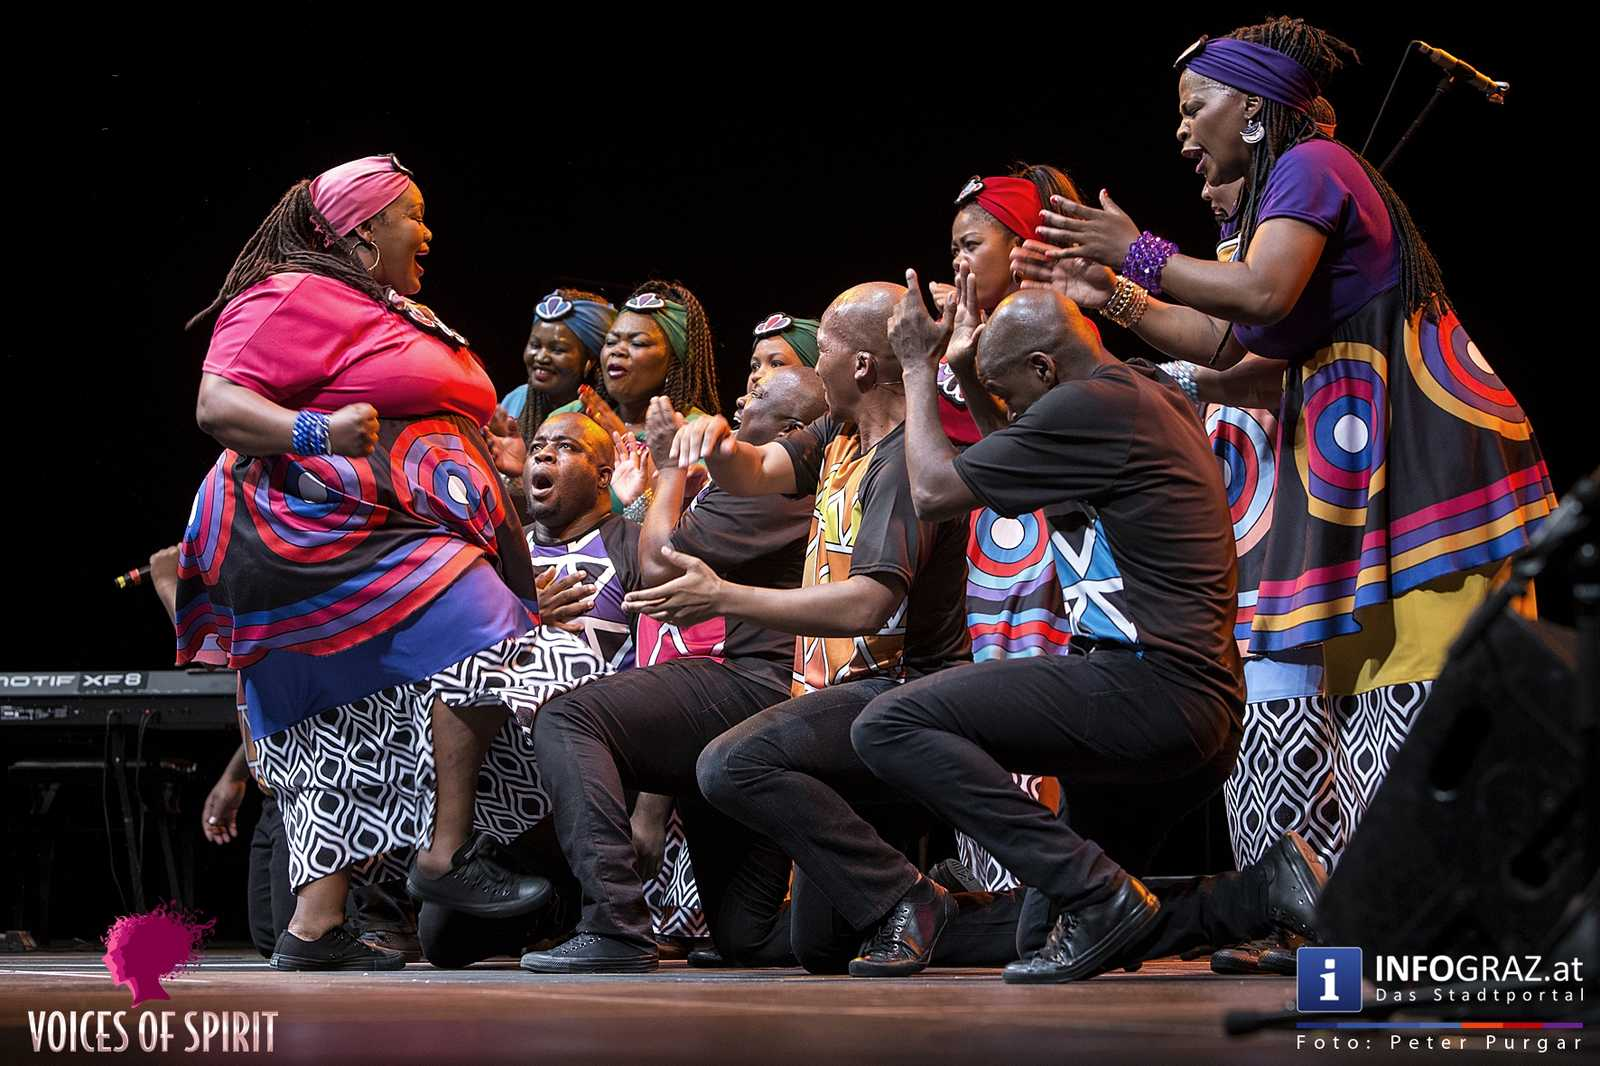 soweto gospel choir internationales chorfestival statdthalle graz voices of spirit eroeffnung festivals 2016 060